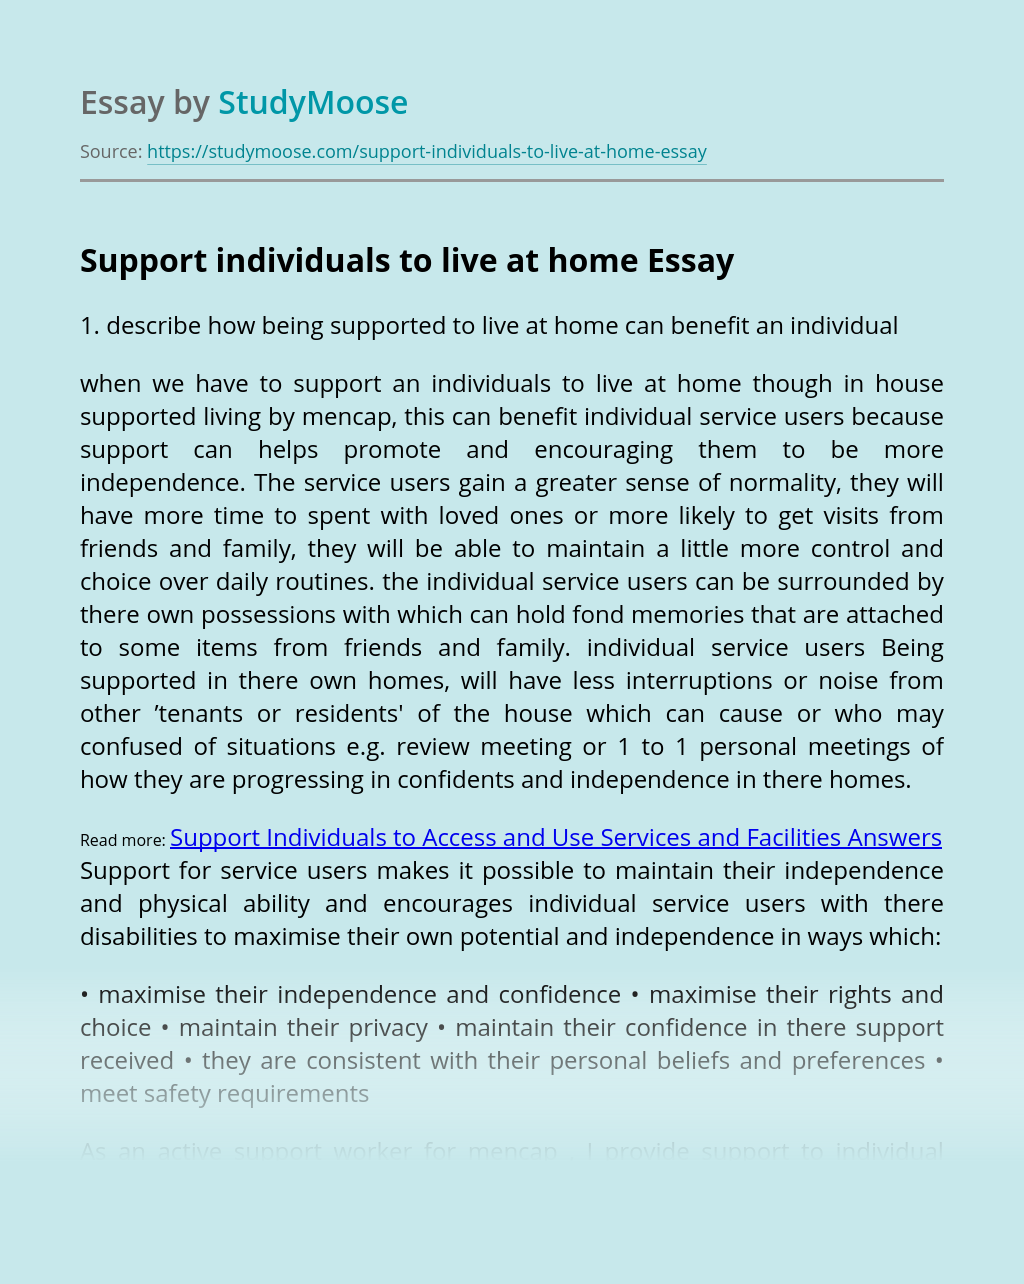 Support individuals to live at home